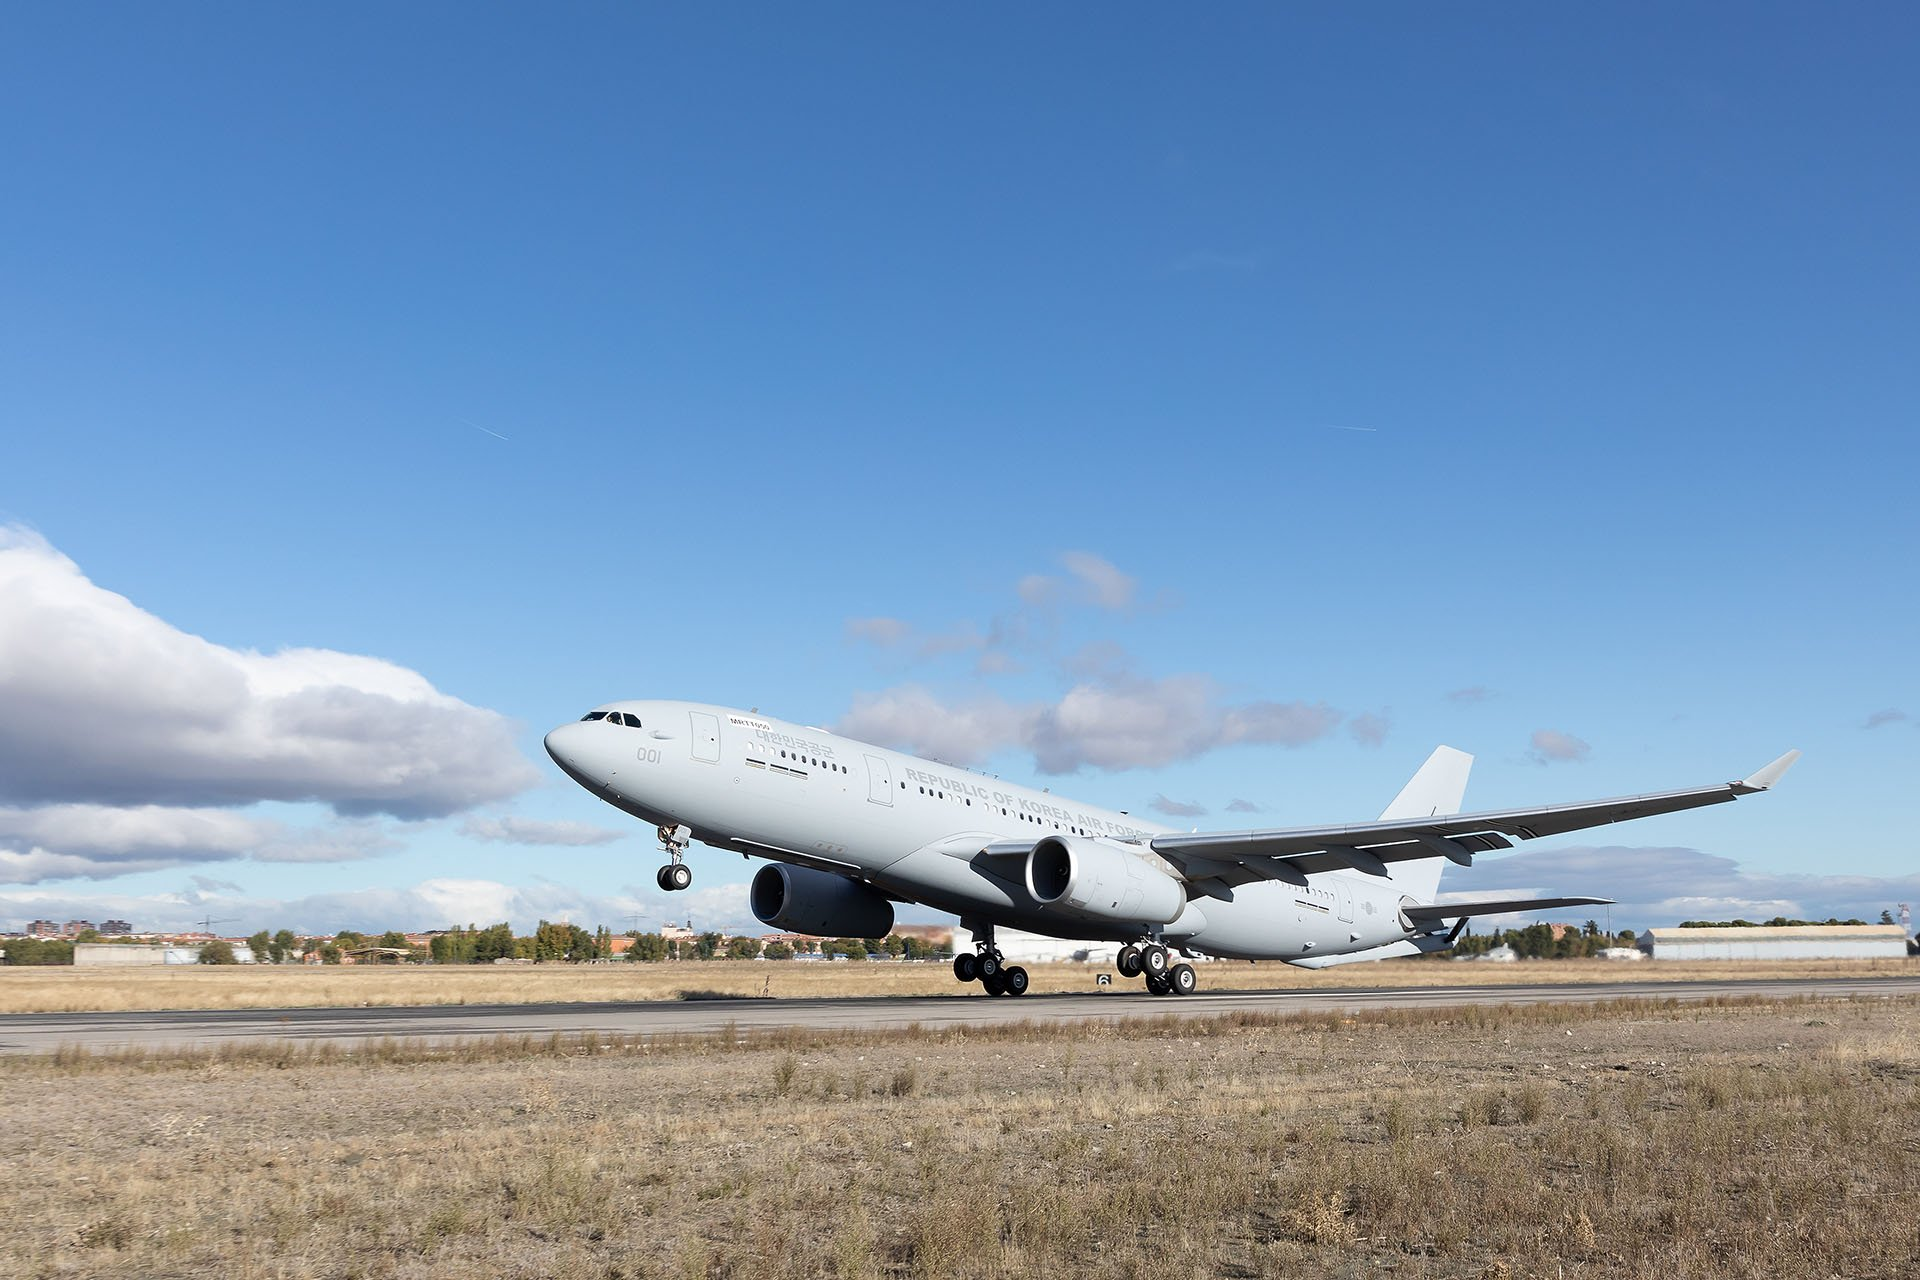 A330 MRTT Republic of Korea Air Force- Take Off